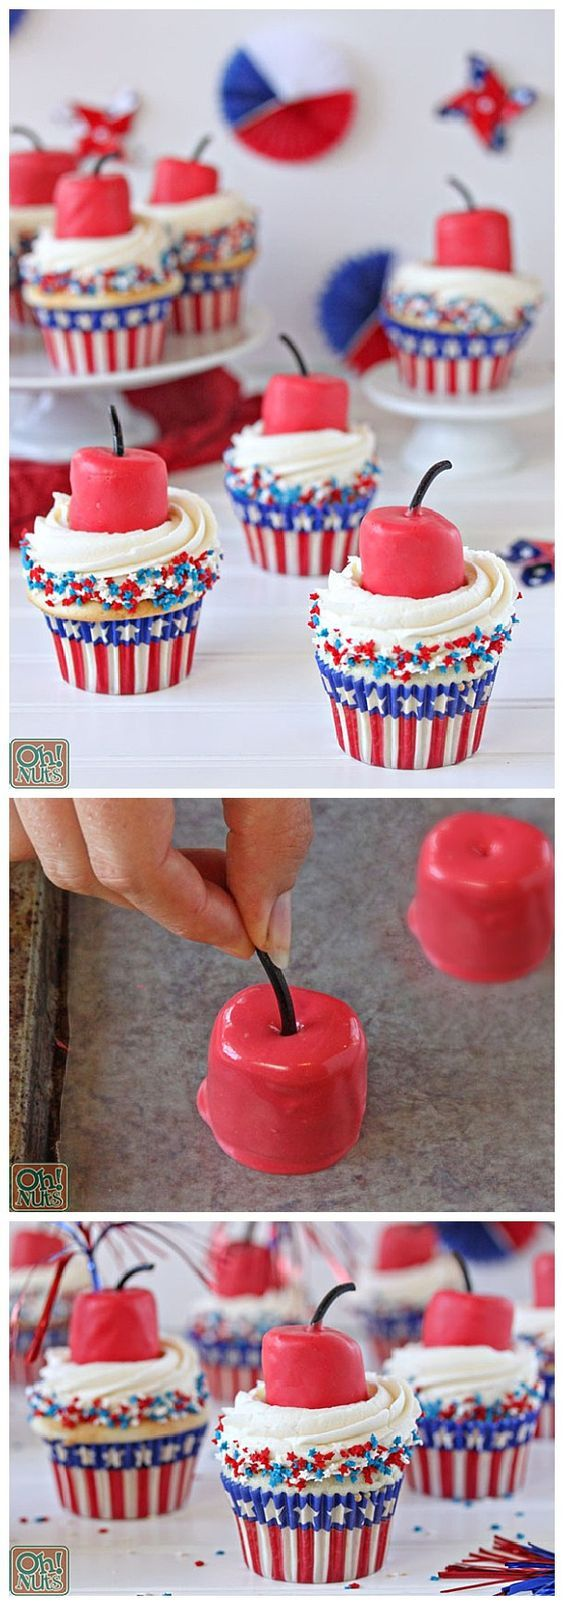 Do it Yourself 4th of July - Firecracker Cupcakes Recipe and Tutorial - The perfect dessert treat for Independence Day Cookouts and Parties! via Oh Nuts